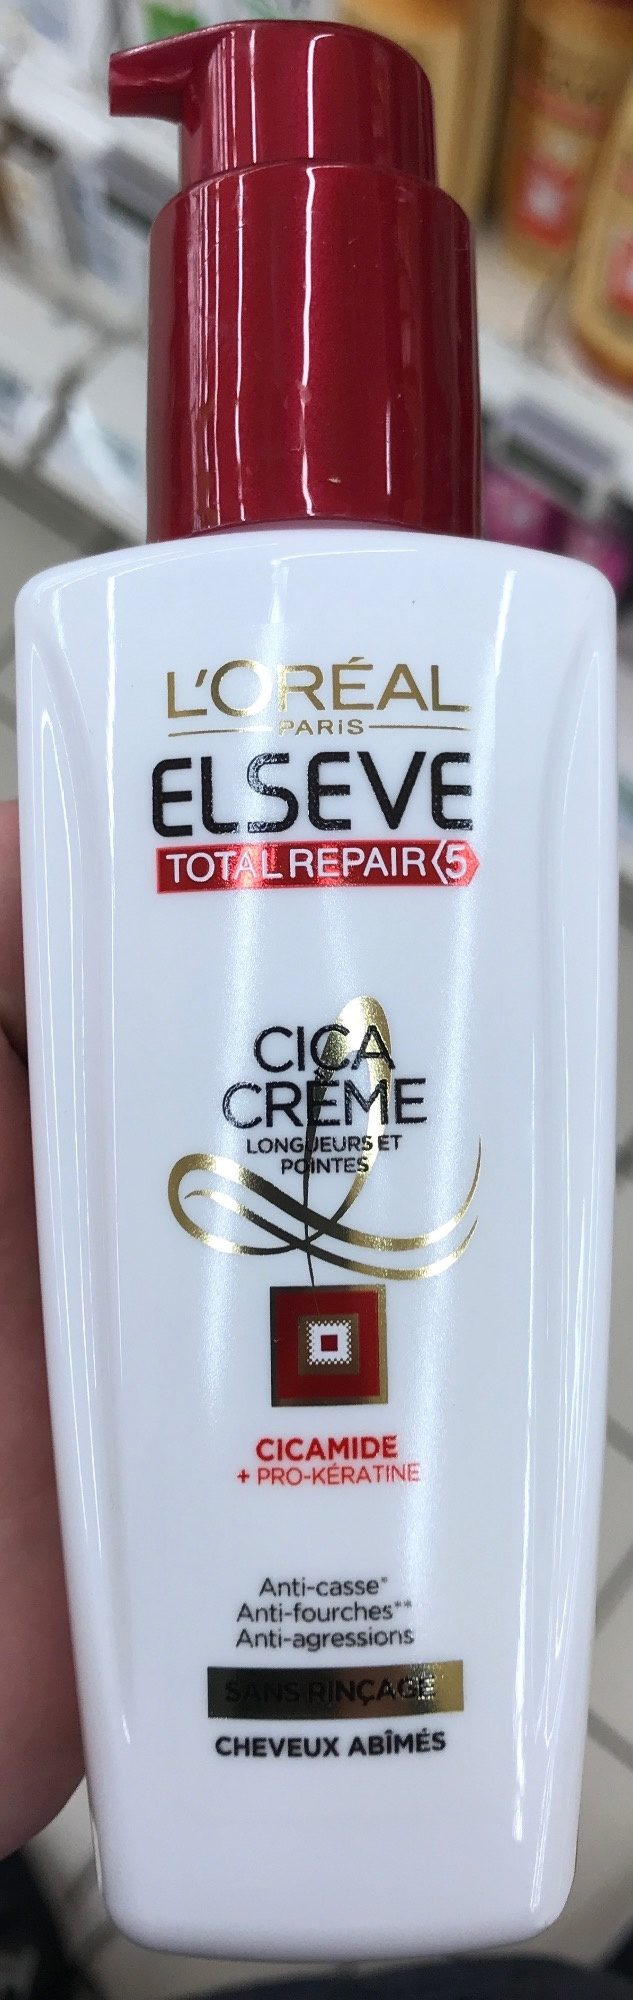 Elseve Total Repair Cica Crème - Product - fr